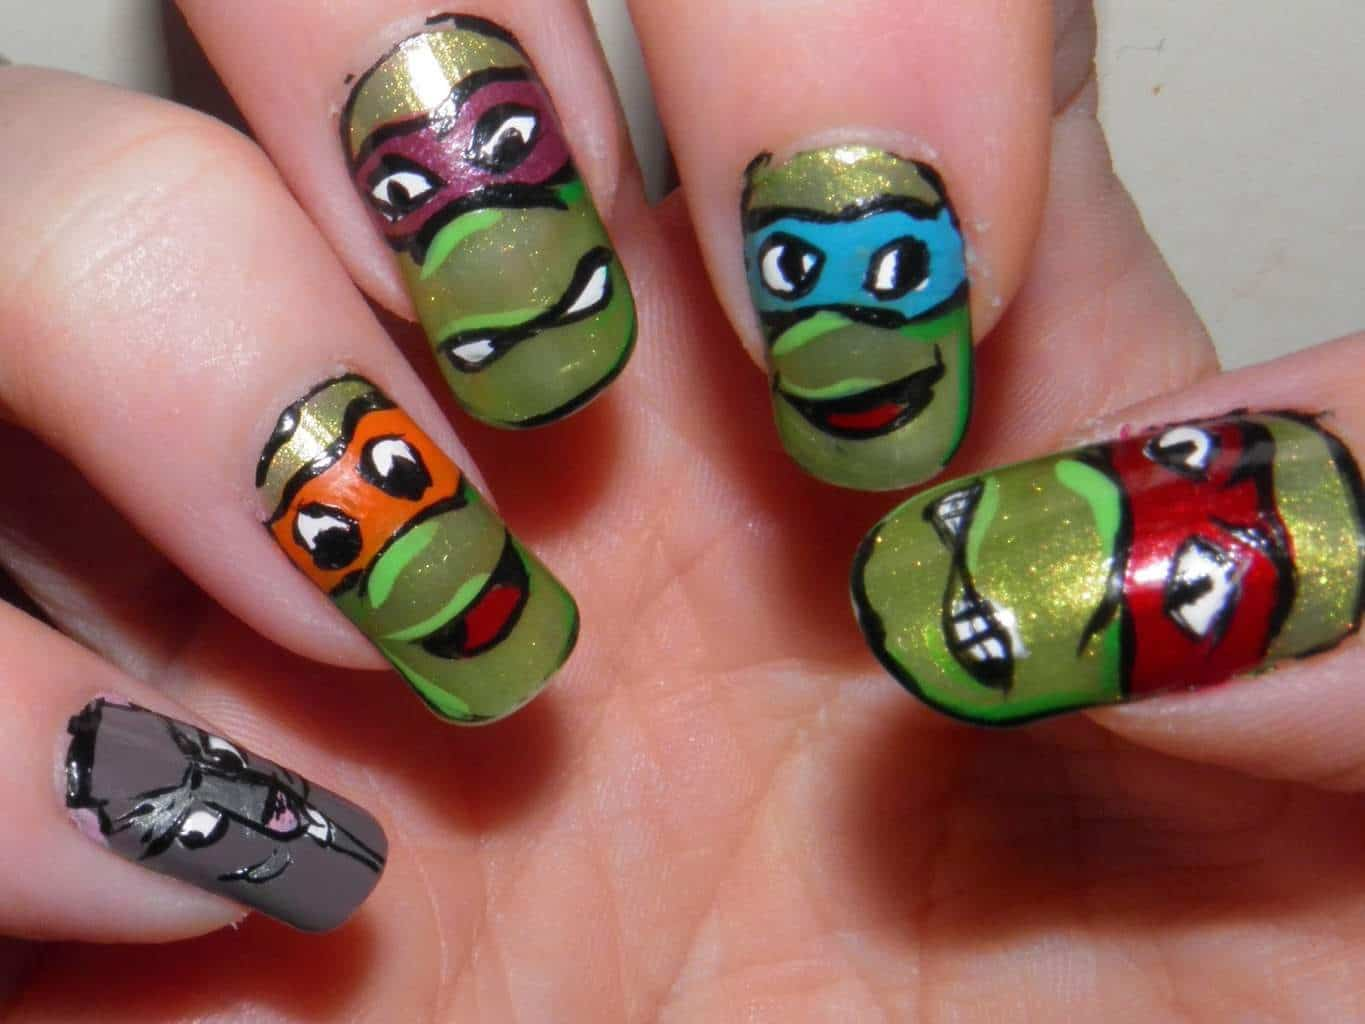 Animal print nail designs try out these 20 ideas naildesigncode 6 teenage mutant ninja turtles animal print nail prinsesfo Gallery